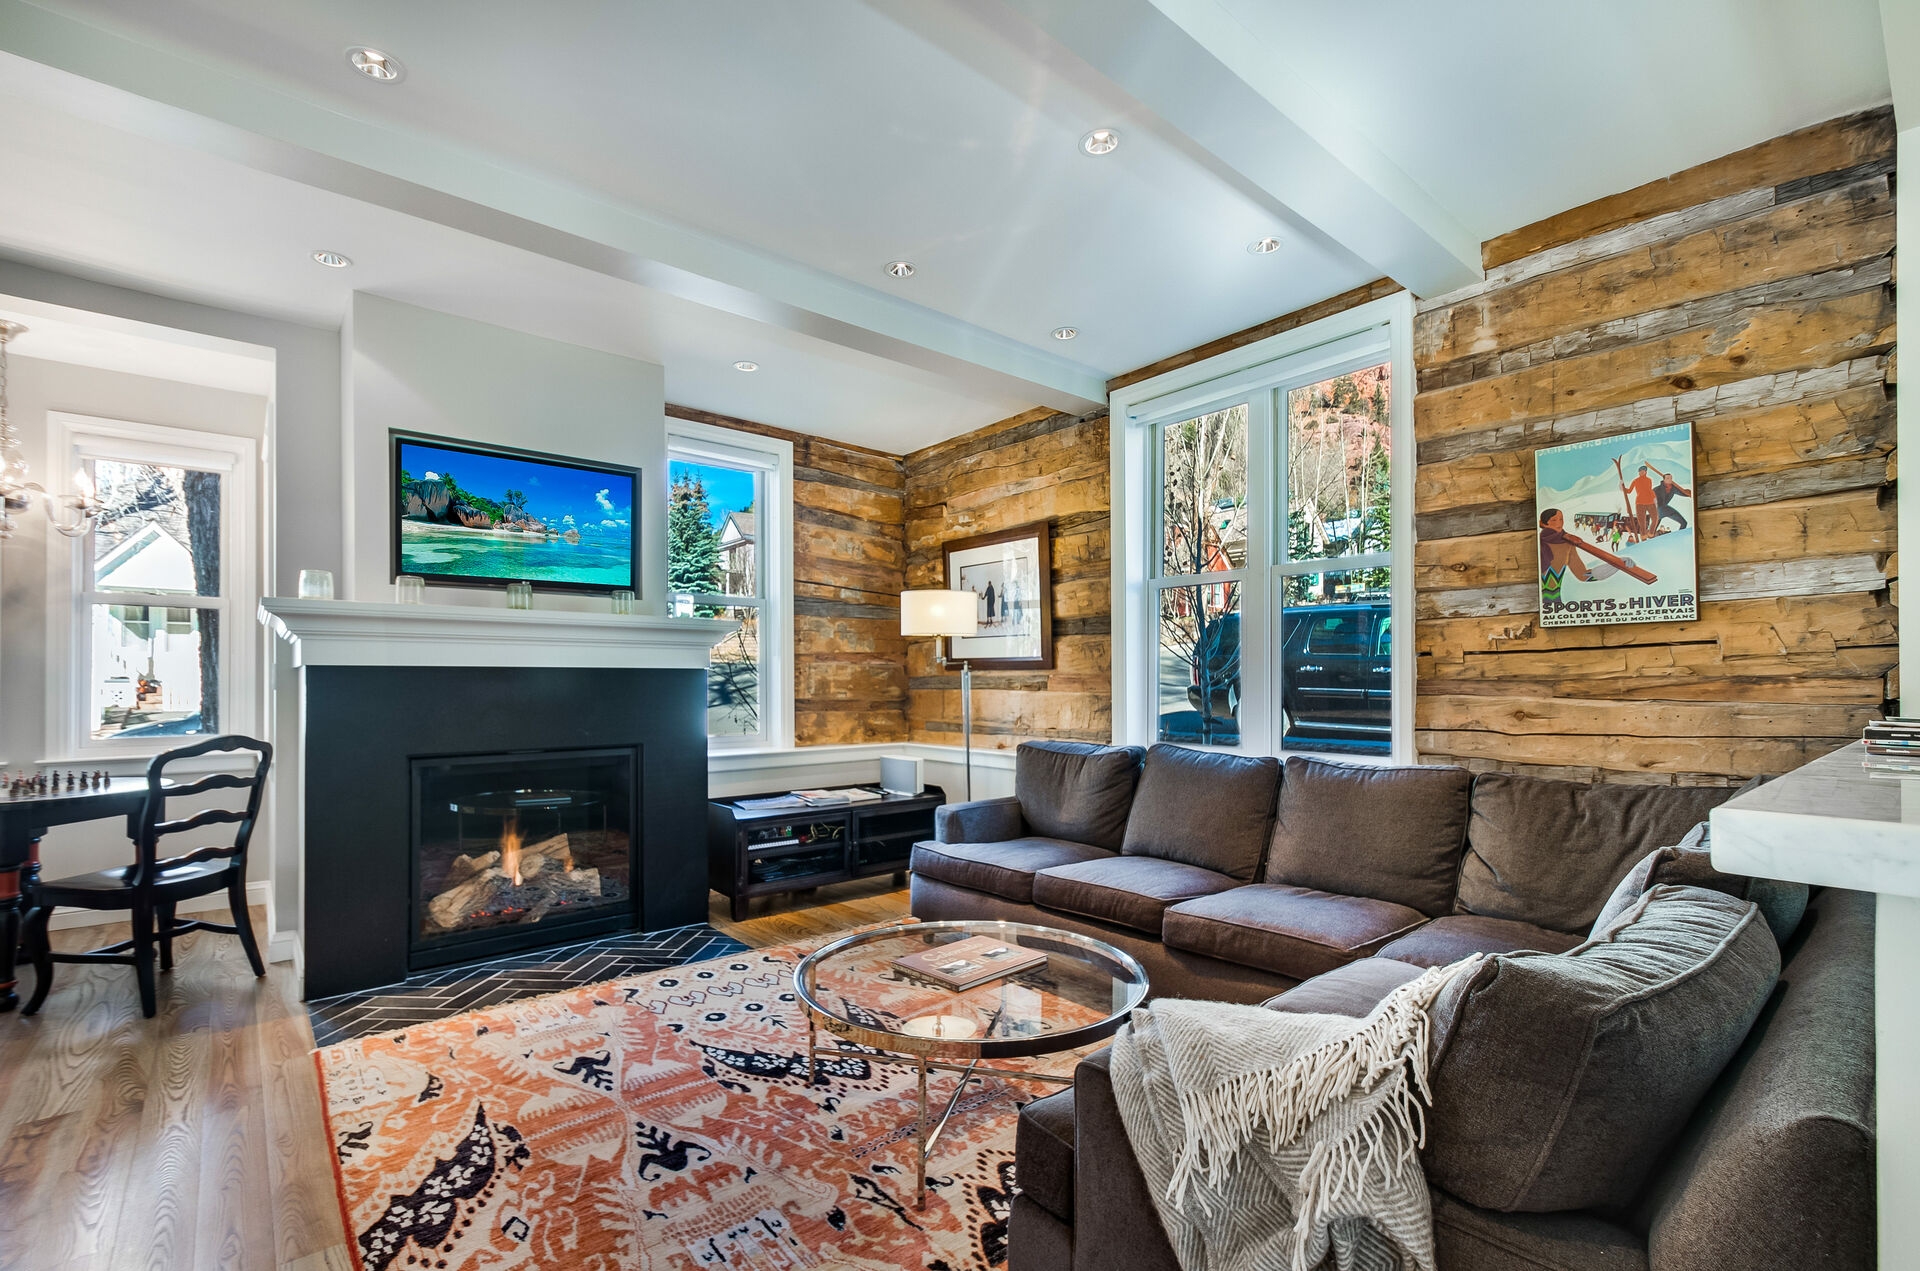 Living Space with Cozy Decor and Fireplace